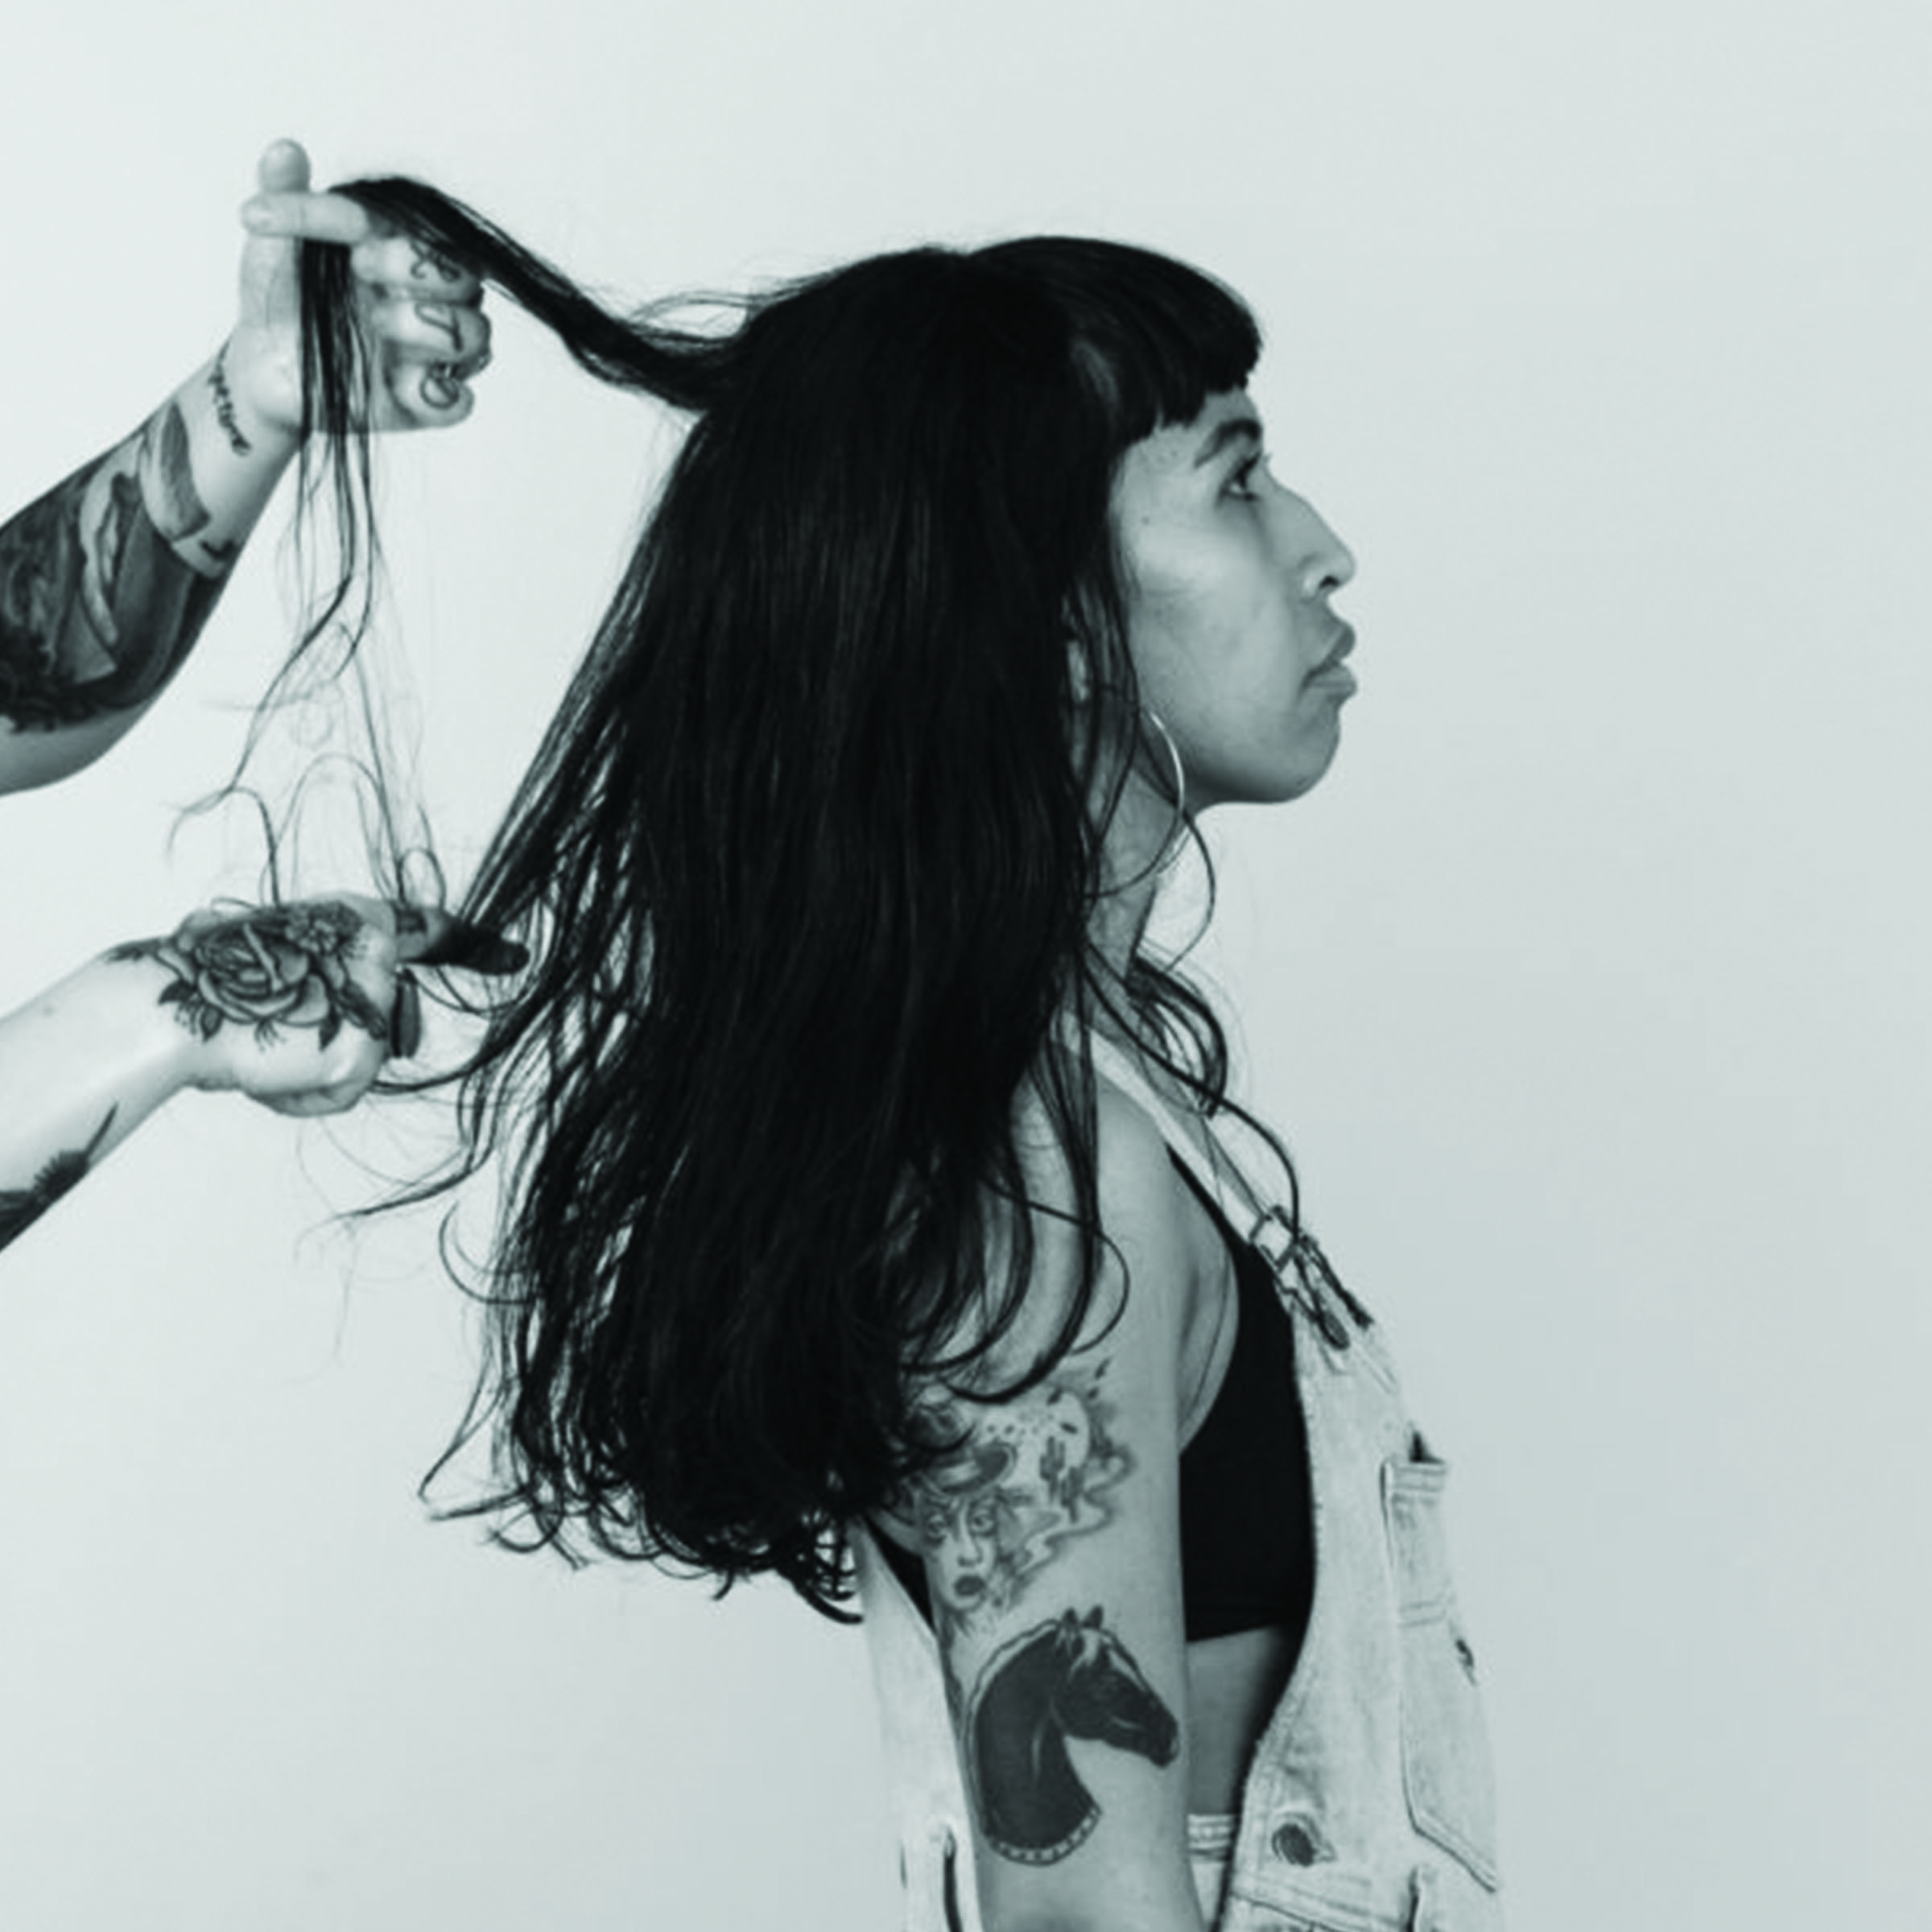 STYLE   WASH, BLOW DRY, AND/OR STYLE WITH HOT TOOLS. CAN ALSO REFER TO CLIPPER DESIGNS OR LINEWORK SHAVED INTO THE HAIR.